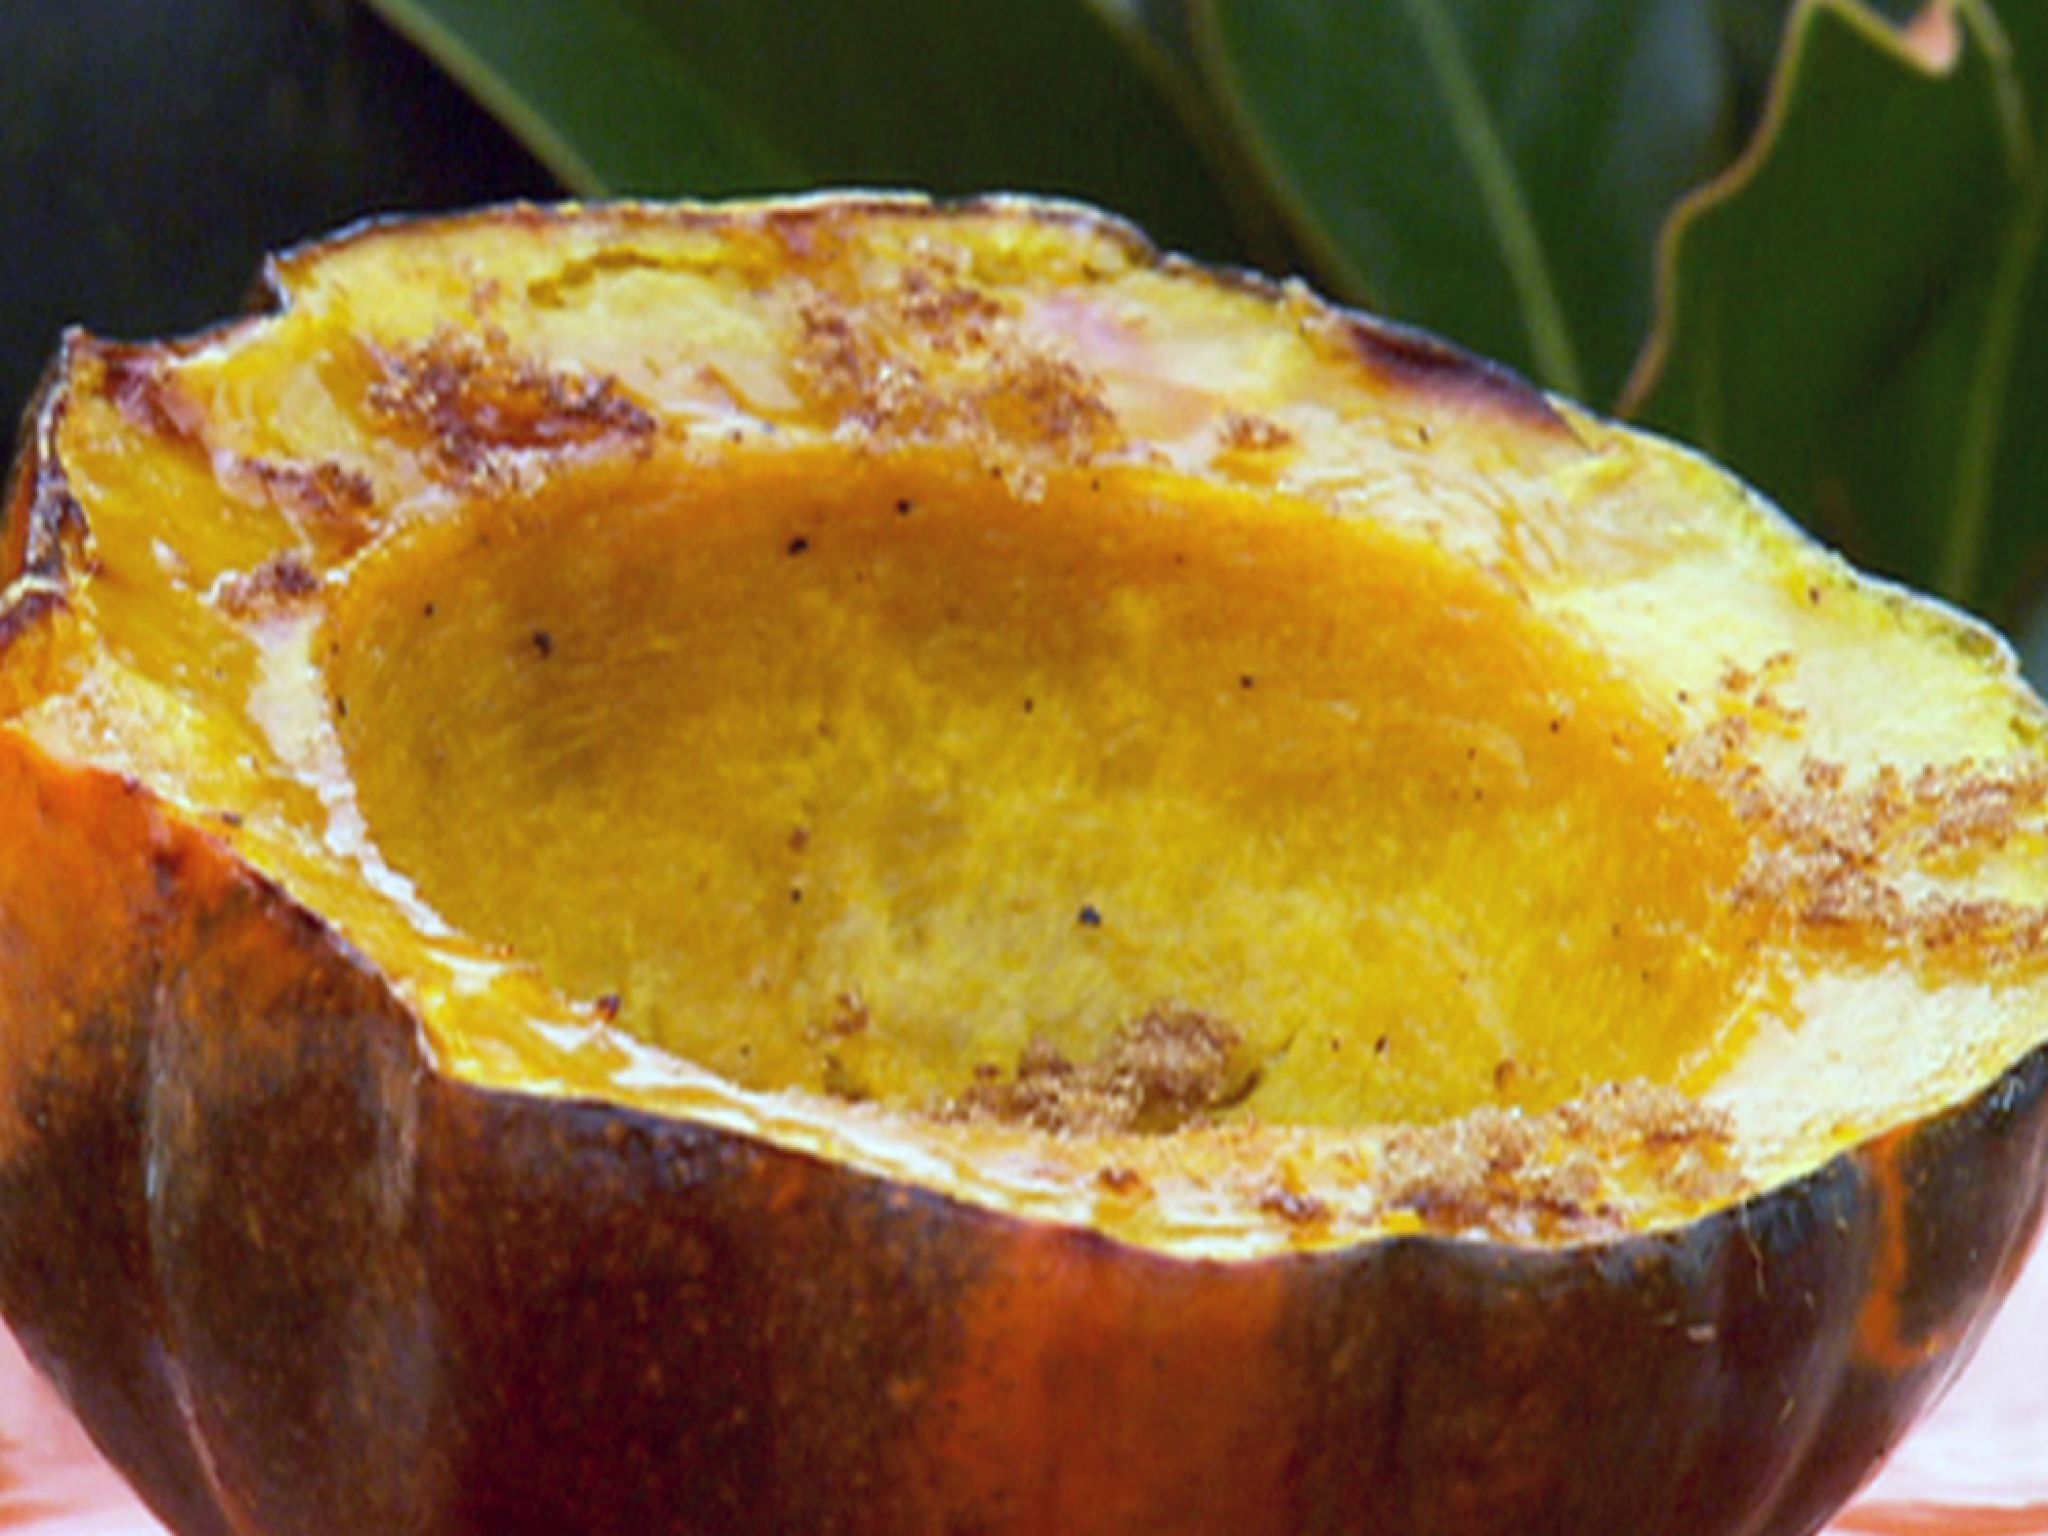 Baked Acorn Squash With Brown Sugar And Butter Recipe Acorn Squash Recipes Food Network Recipes Baked Squash